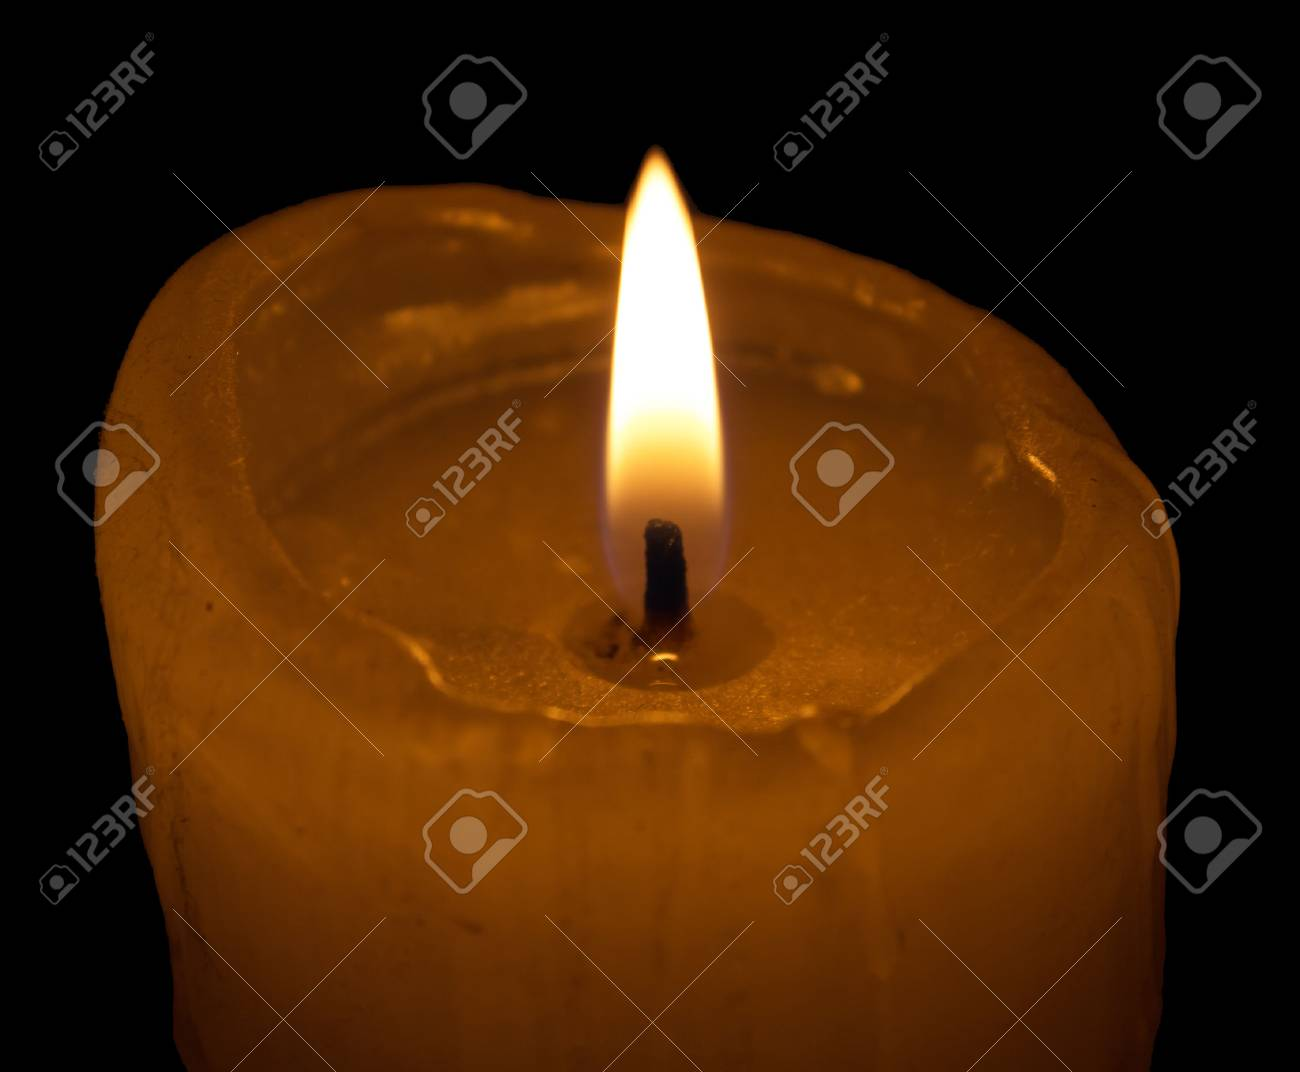 burning candle Stock Photo - 33478808